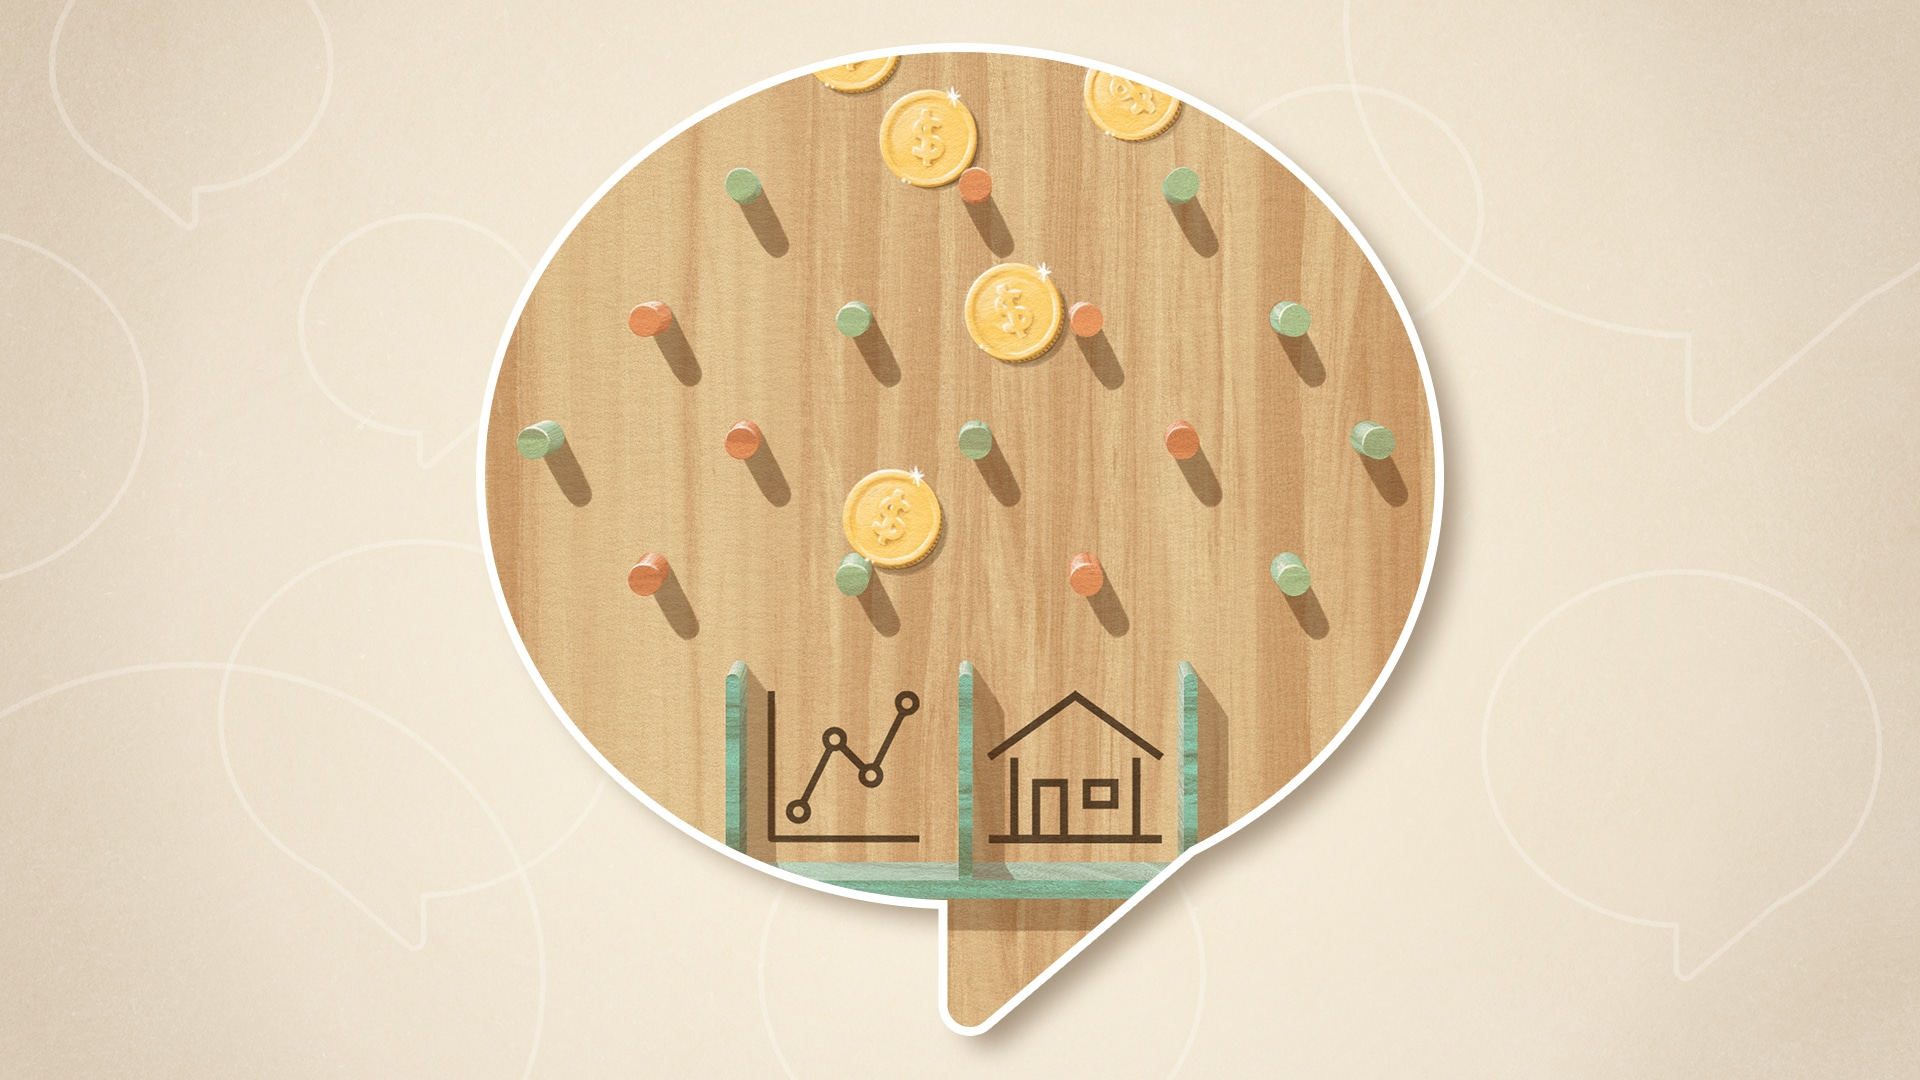 Illustration of a Plinko game, where coins are falling and hitting pegs, and the buckets at the bottom display symbols of a stock market graph and a house.